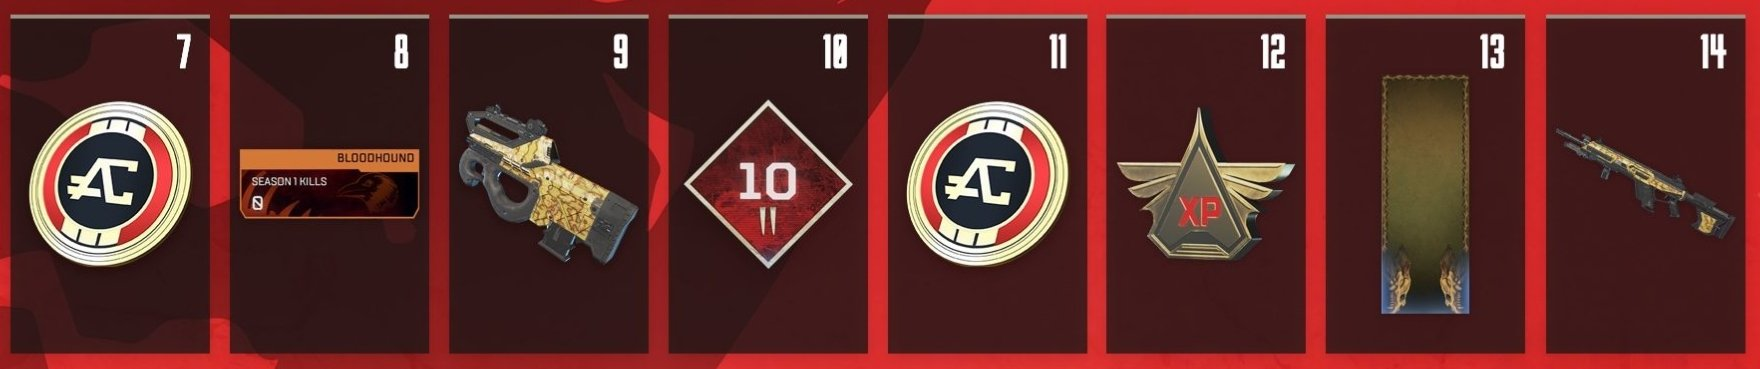 Apex Legends Battle Pass Rewards Levels 7-14